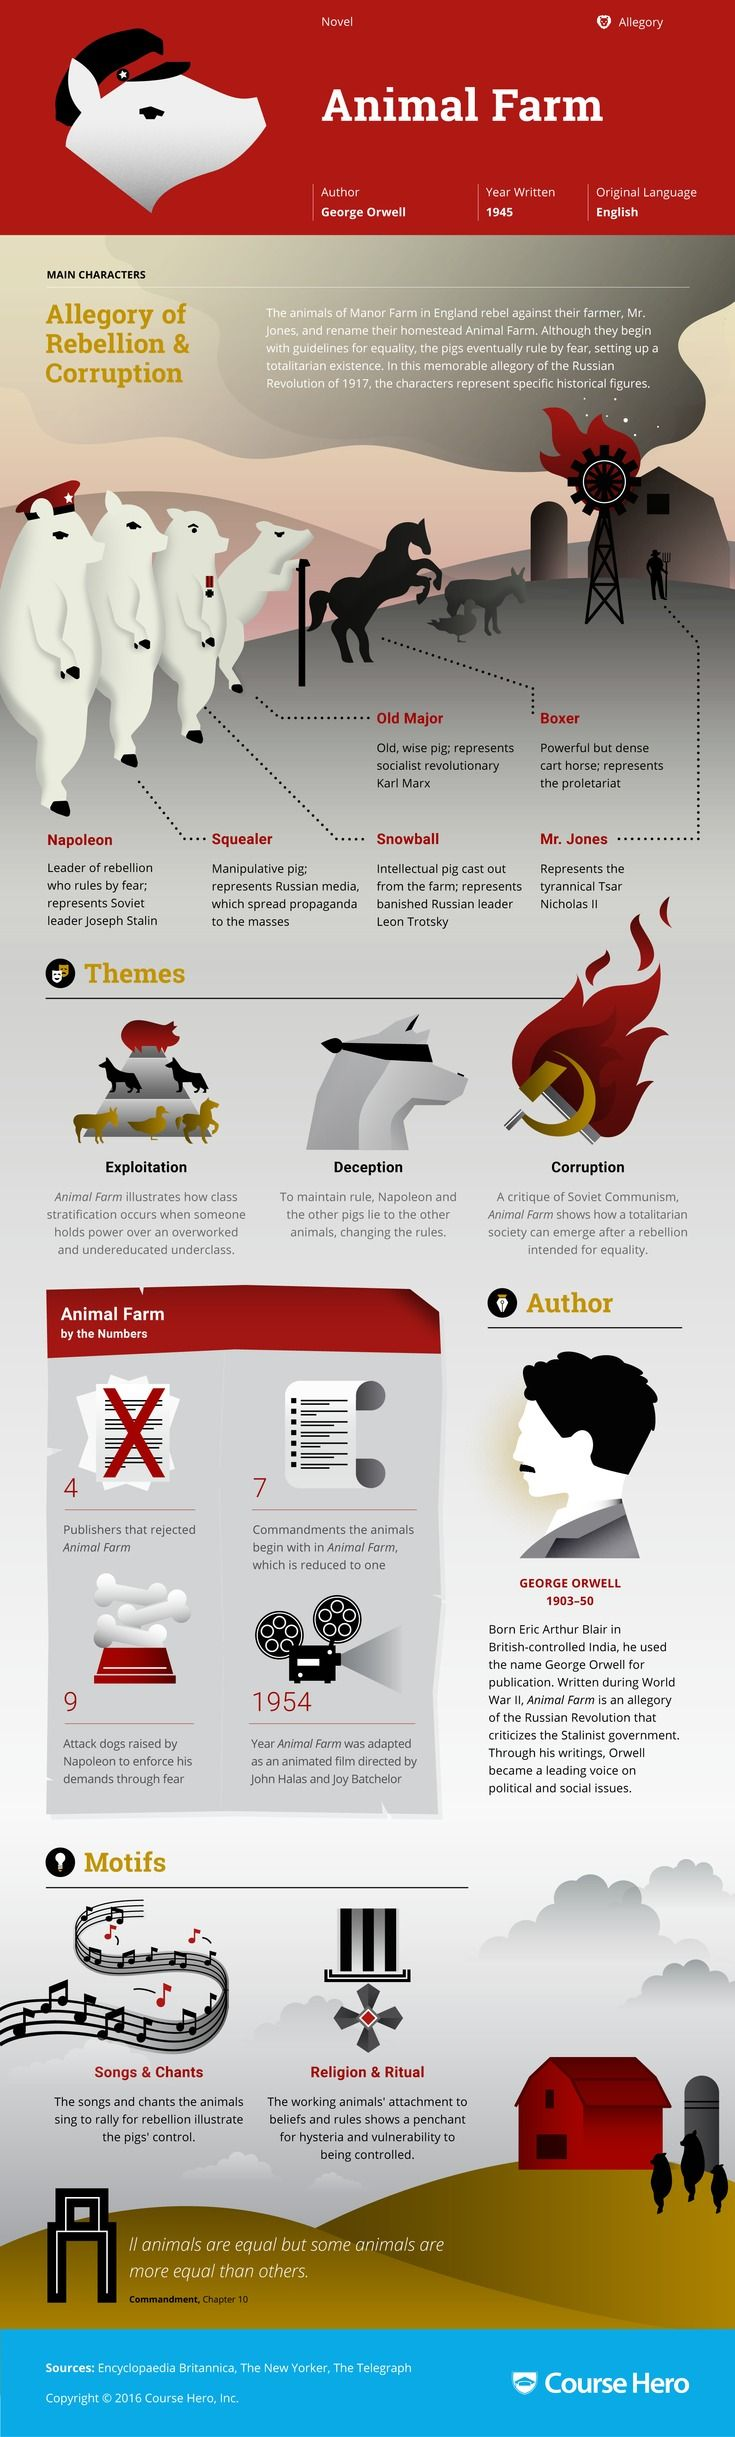 best images about animal farm orwell king this coursehero infographic on animal farm is both visually stunning and informative